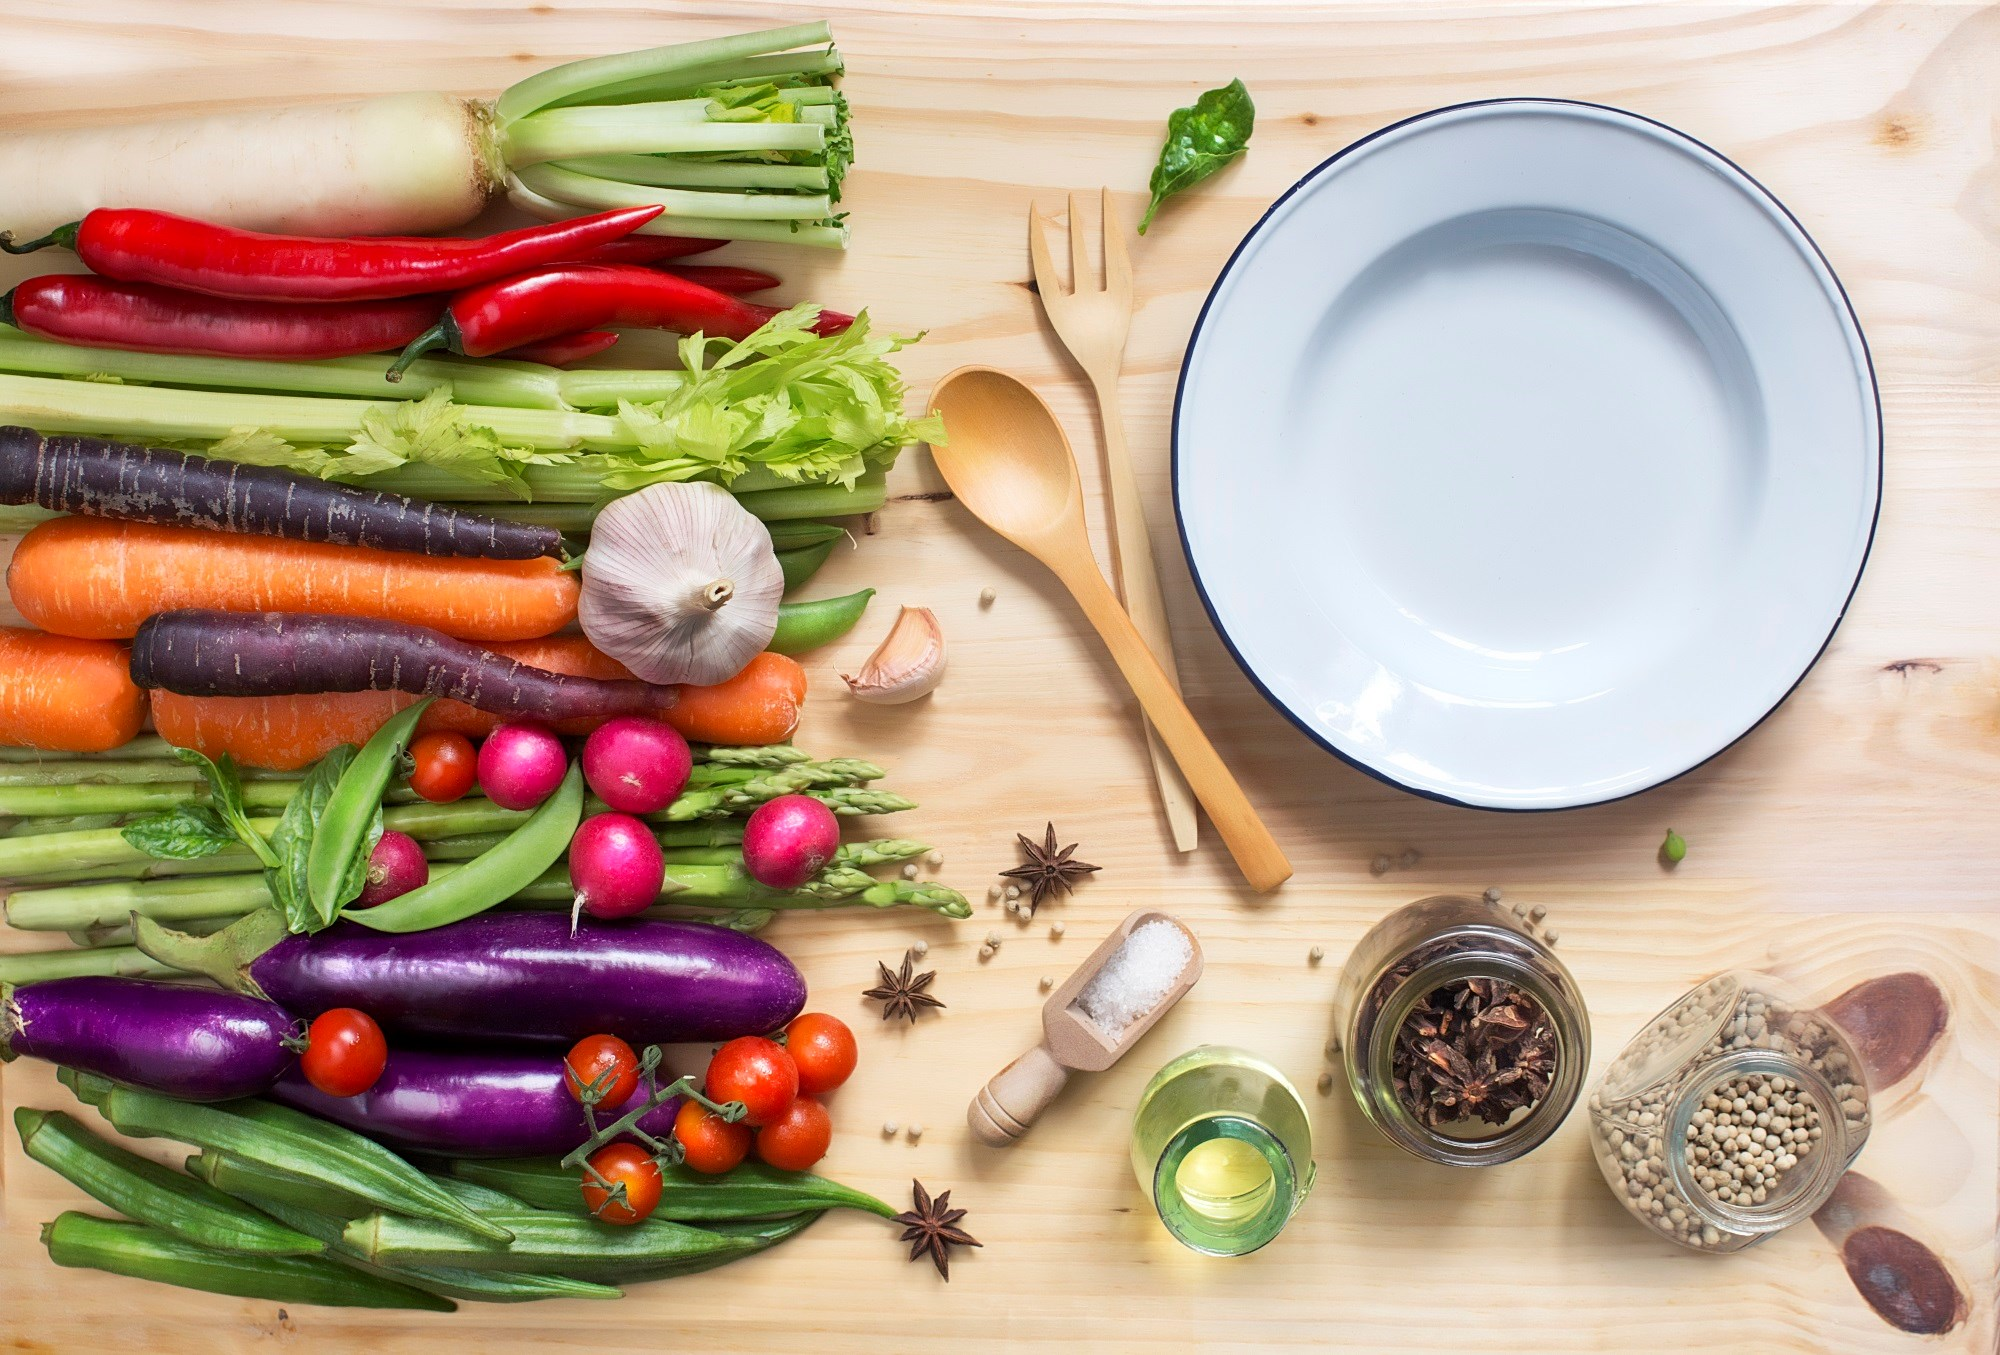 The study of culinary medicine helps physicians fill gaps in knowledge about nutrition.